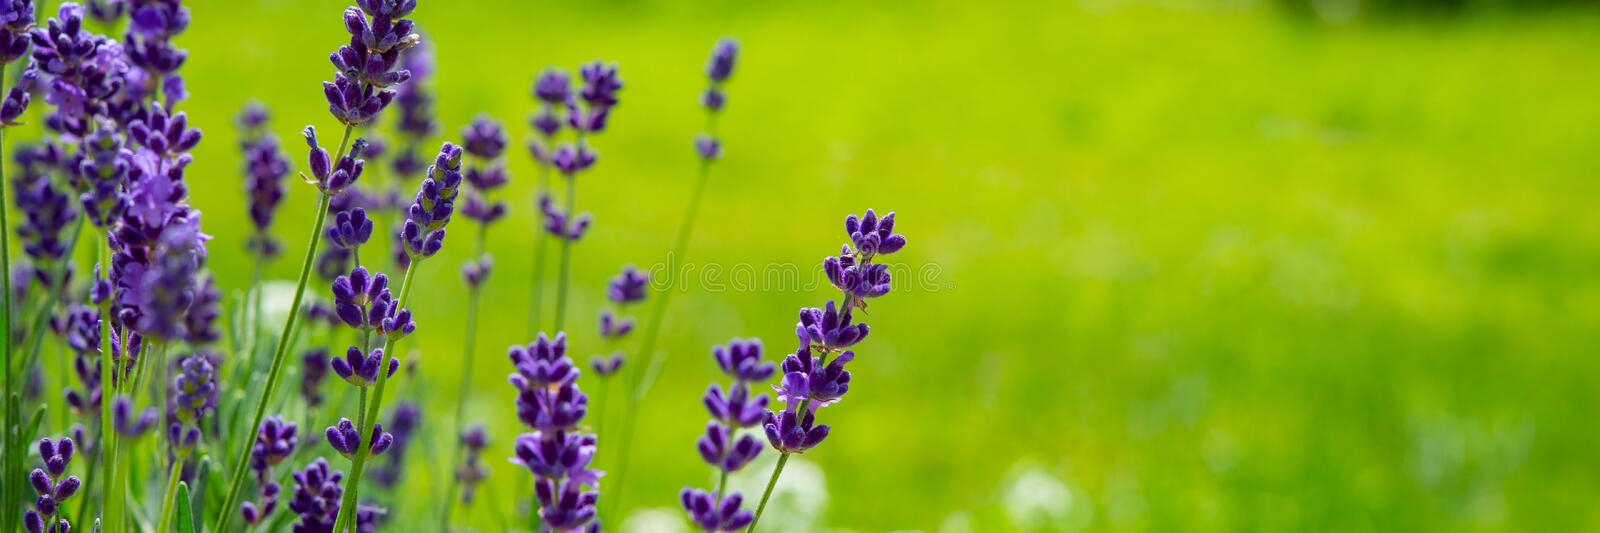 Blooming lavender flowers on green grass background on a sunny day. Web banner. Summer season in the countryside royalty free stock image